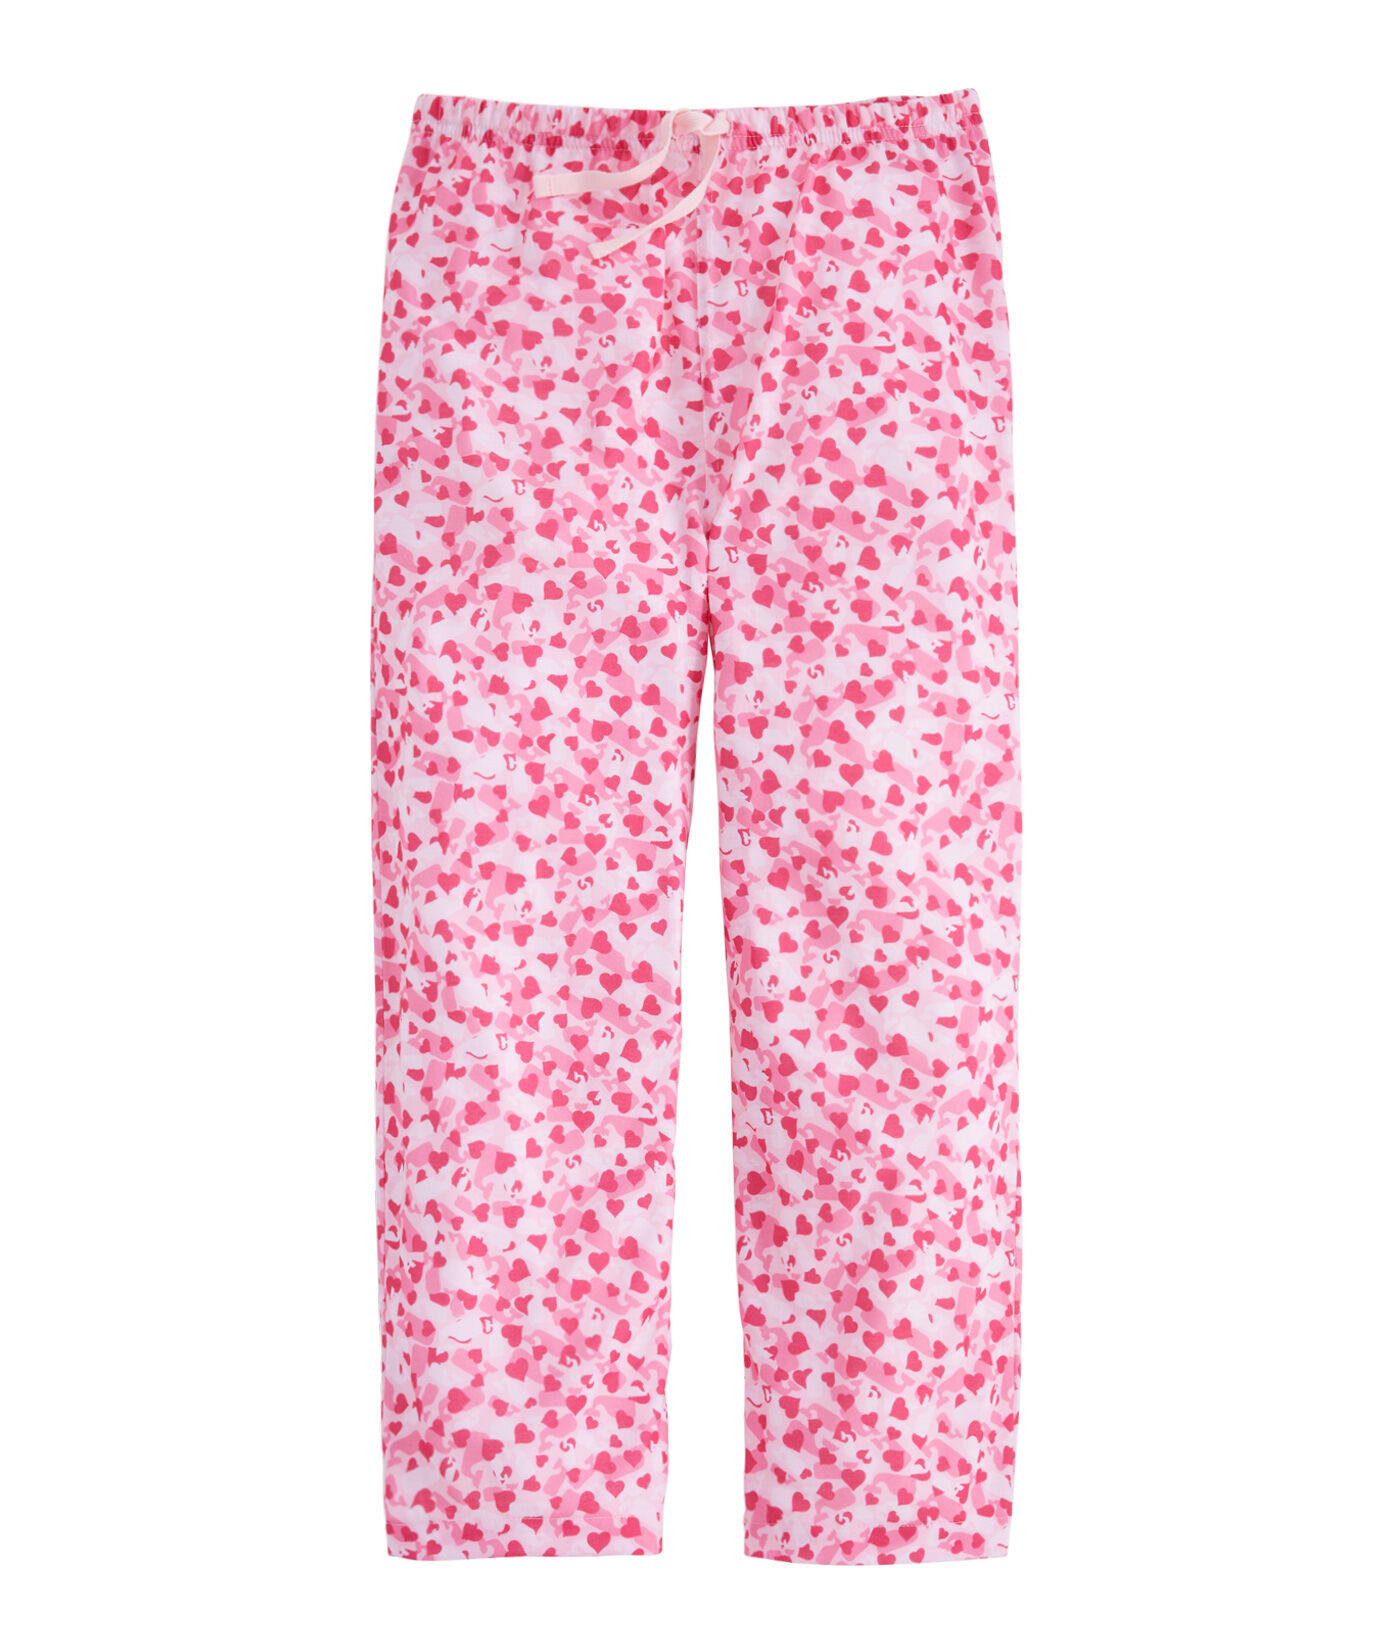 95e94a3b2bbd Shop girls hearts whales lounge pants at vineyard vines jpg 657x782 Pants  with hearts